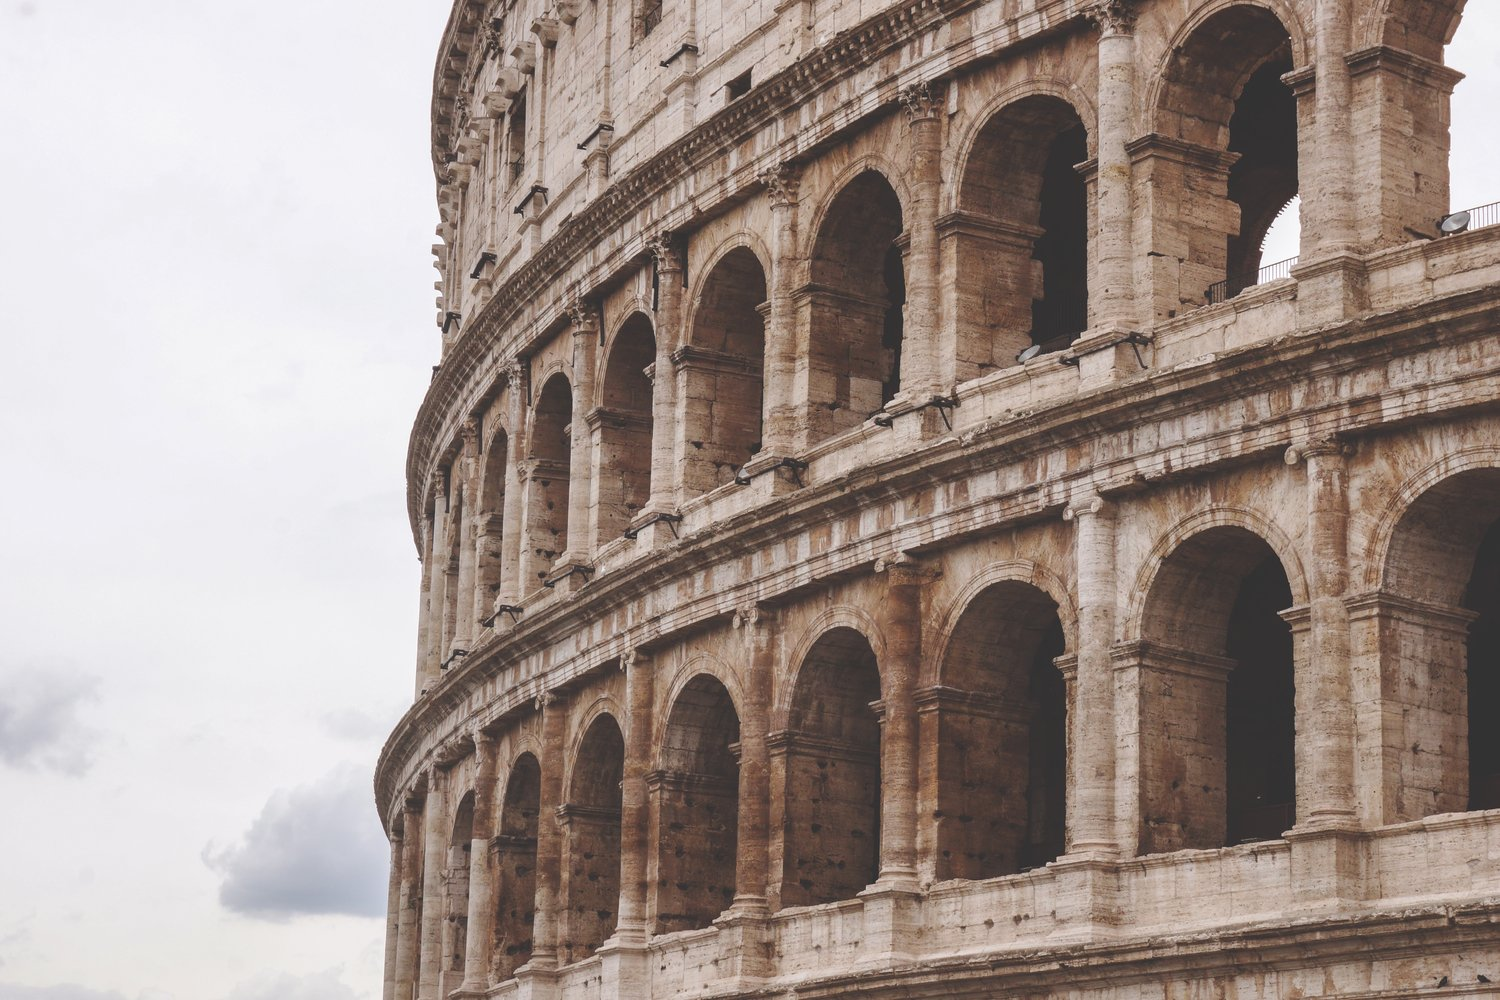 the best time to travel to italy (according to your travel style